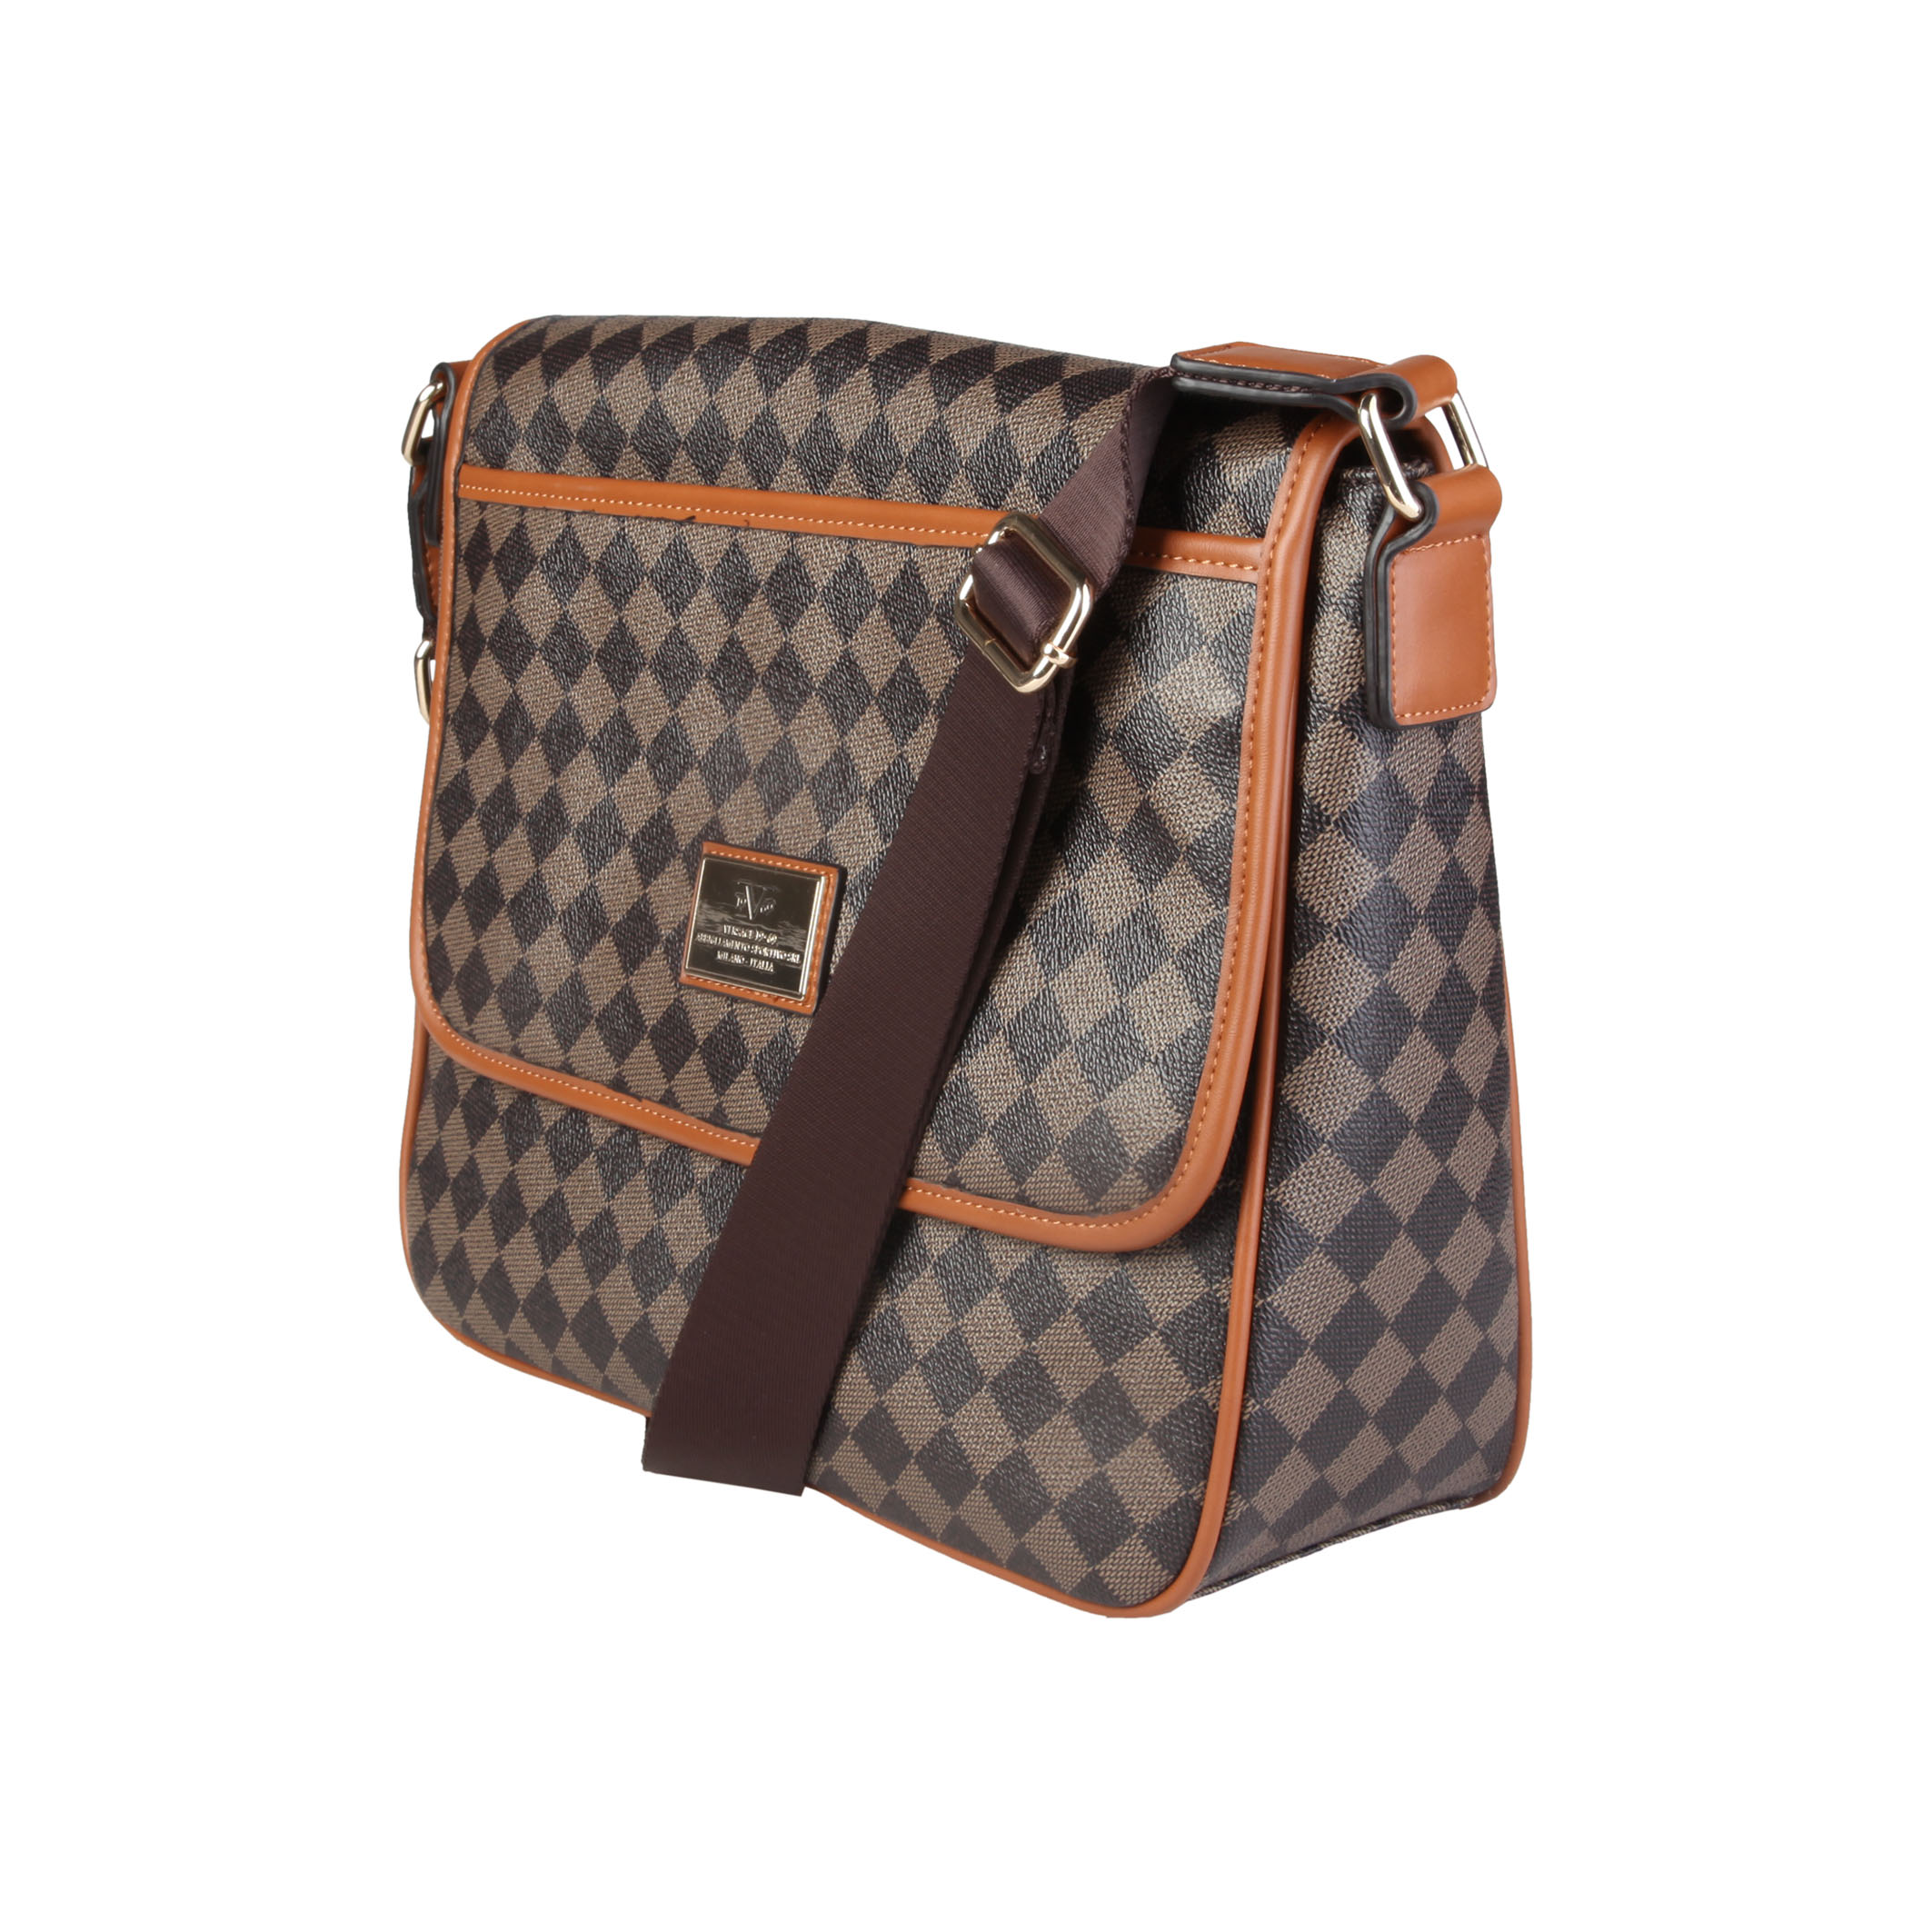 Accessoires   V 1969 GRD-YCA072-2_SQUARE brown